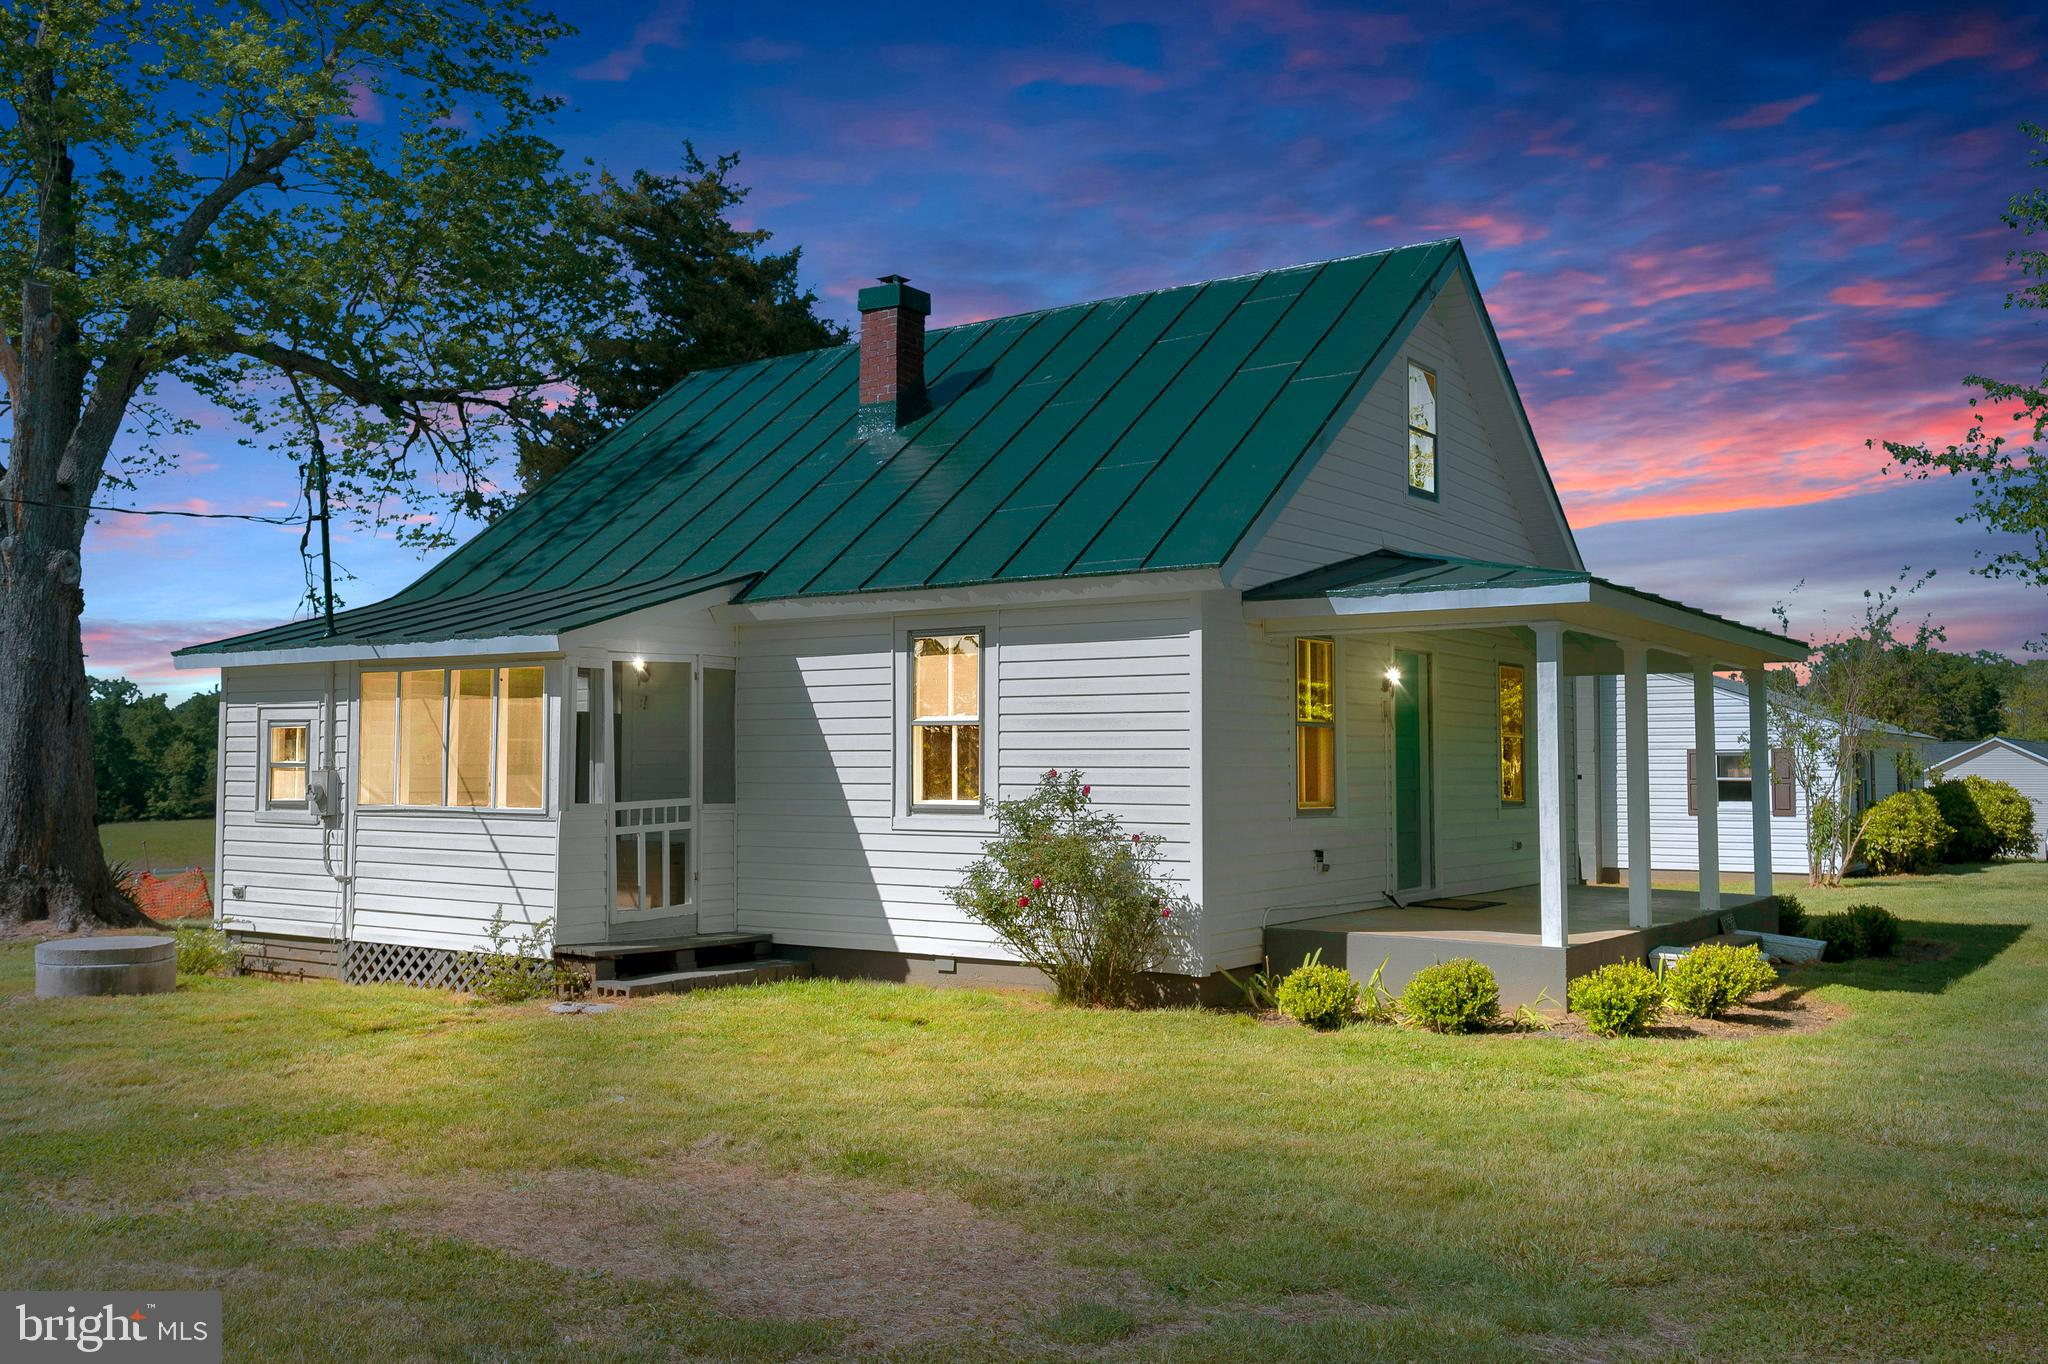 This expertly renovated Cape Cod is sure to please! The large covered front porch is a tranquil place to enjoy your morning cup of coffee. Once inside your eye is immediately drawn to the beautifully refinished hardwood floors and the fresh designer paint. The wow factor doesn't stop there! The granite graced kitchen also features brand new Cabinetry, as well as a large kitchen island & brand new appliances. No Lack of storage space here! The bath has also been given the same quality attention as the rest of the home. There is one main level bedroom and another larger bedroom on the 2nd floor. Need a workshop? Then the oversized heated 2 car detached garage might just be what you are looking for. Lastly, the expansive back yard is ready for family fun. The location can't be beat! So close to Locust Grove, Culpeper, Orange, and Fredericksburg.